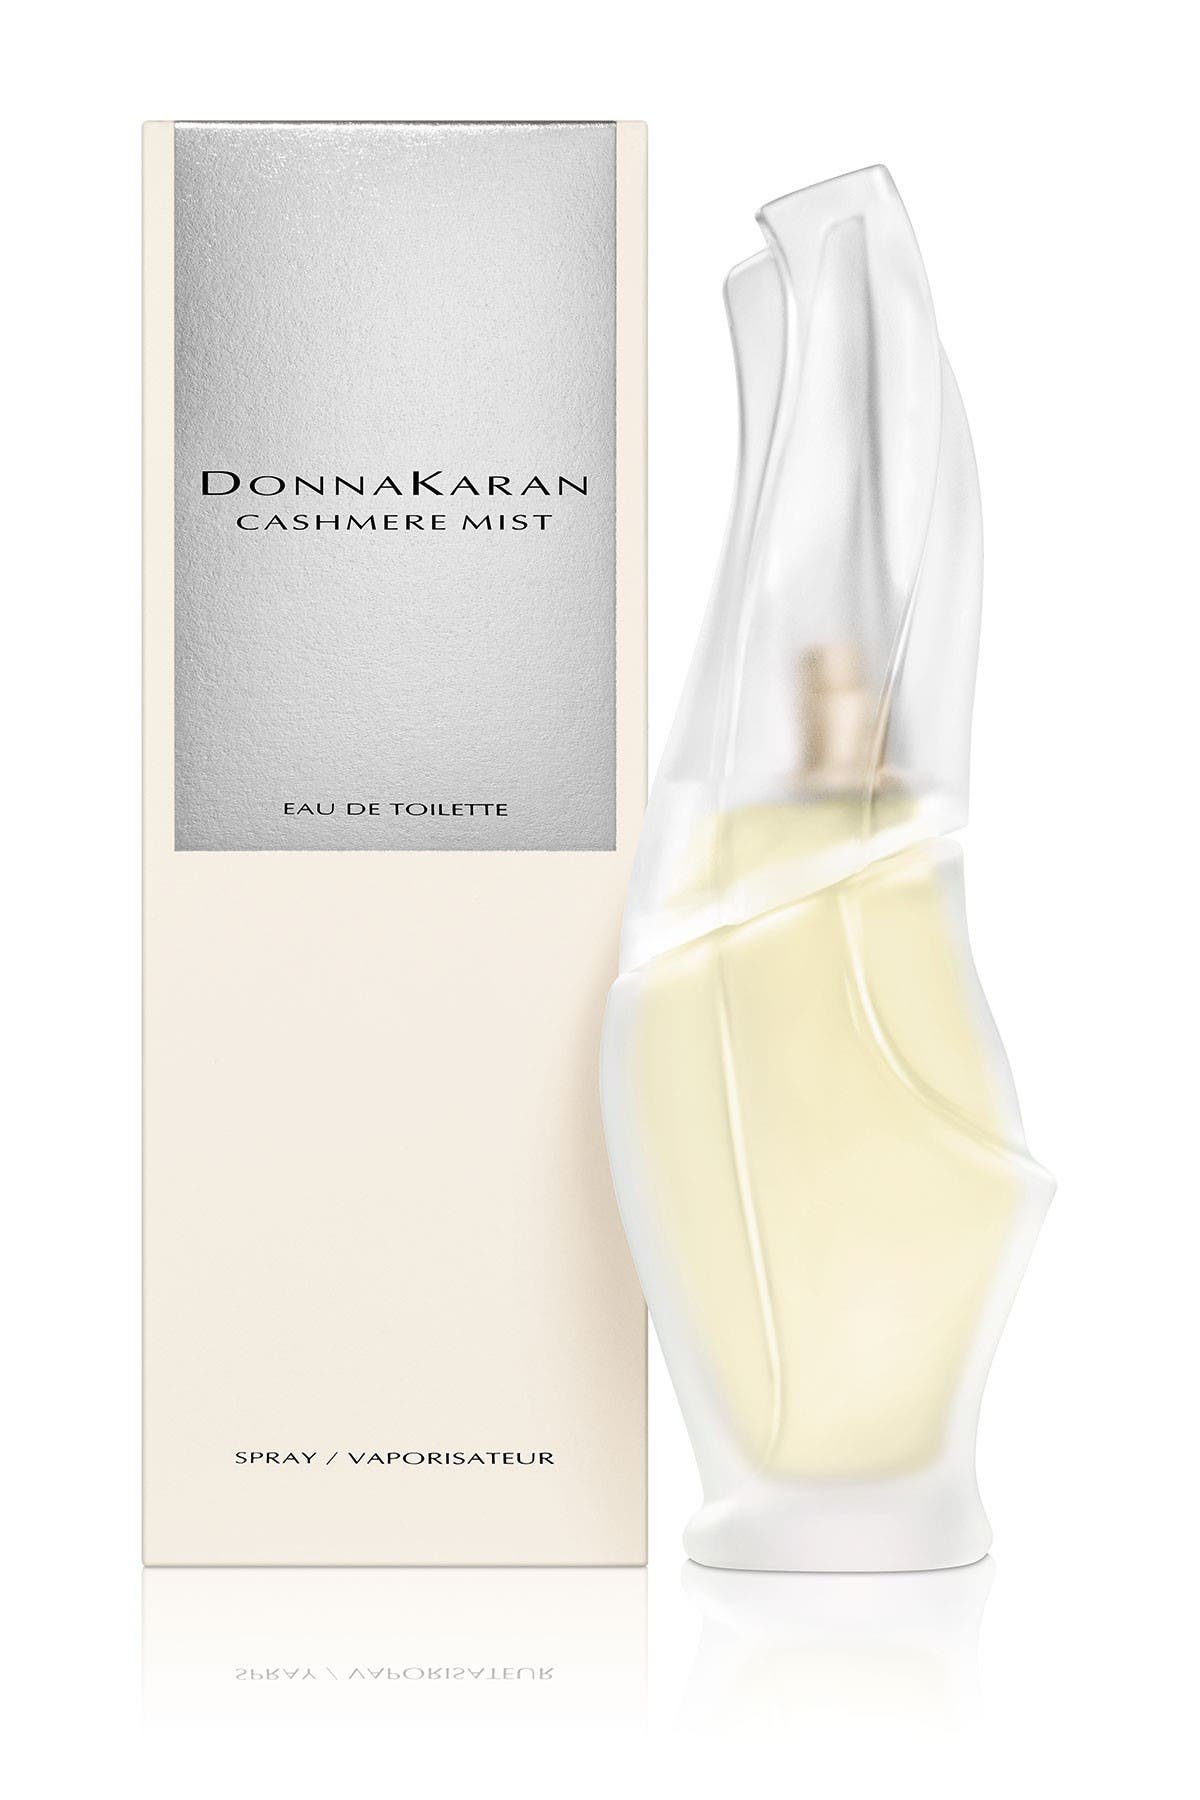 Image of Donna Karan Cashmere Mist Eau de Toilette Spray - 1.7 fl. oz.